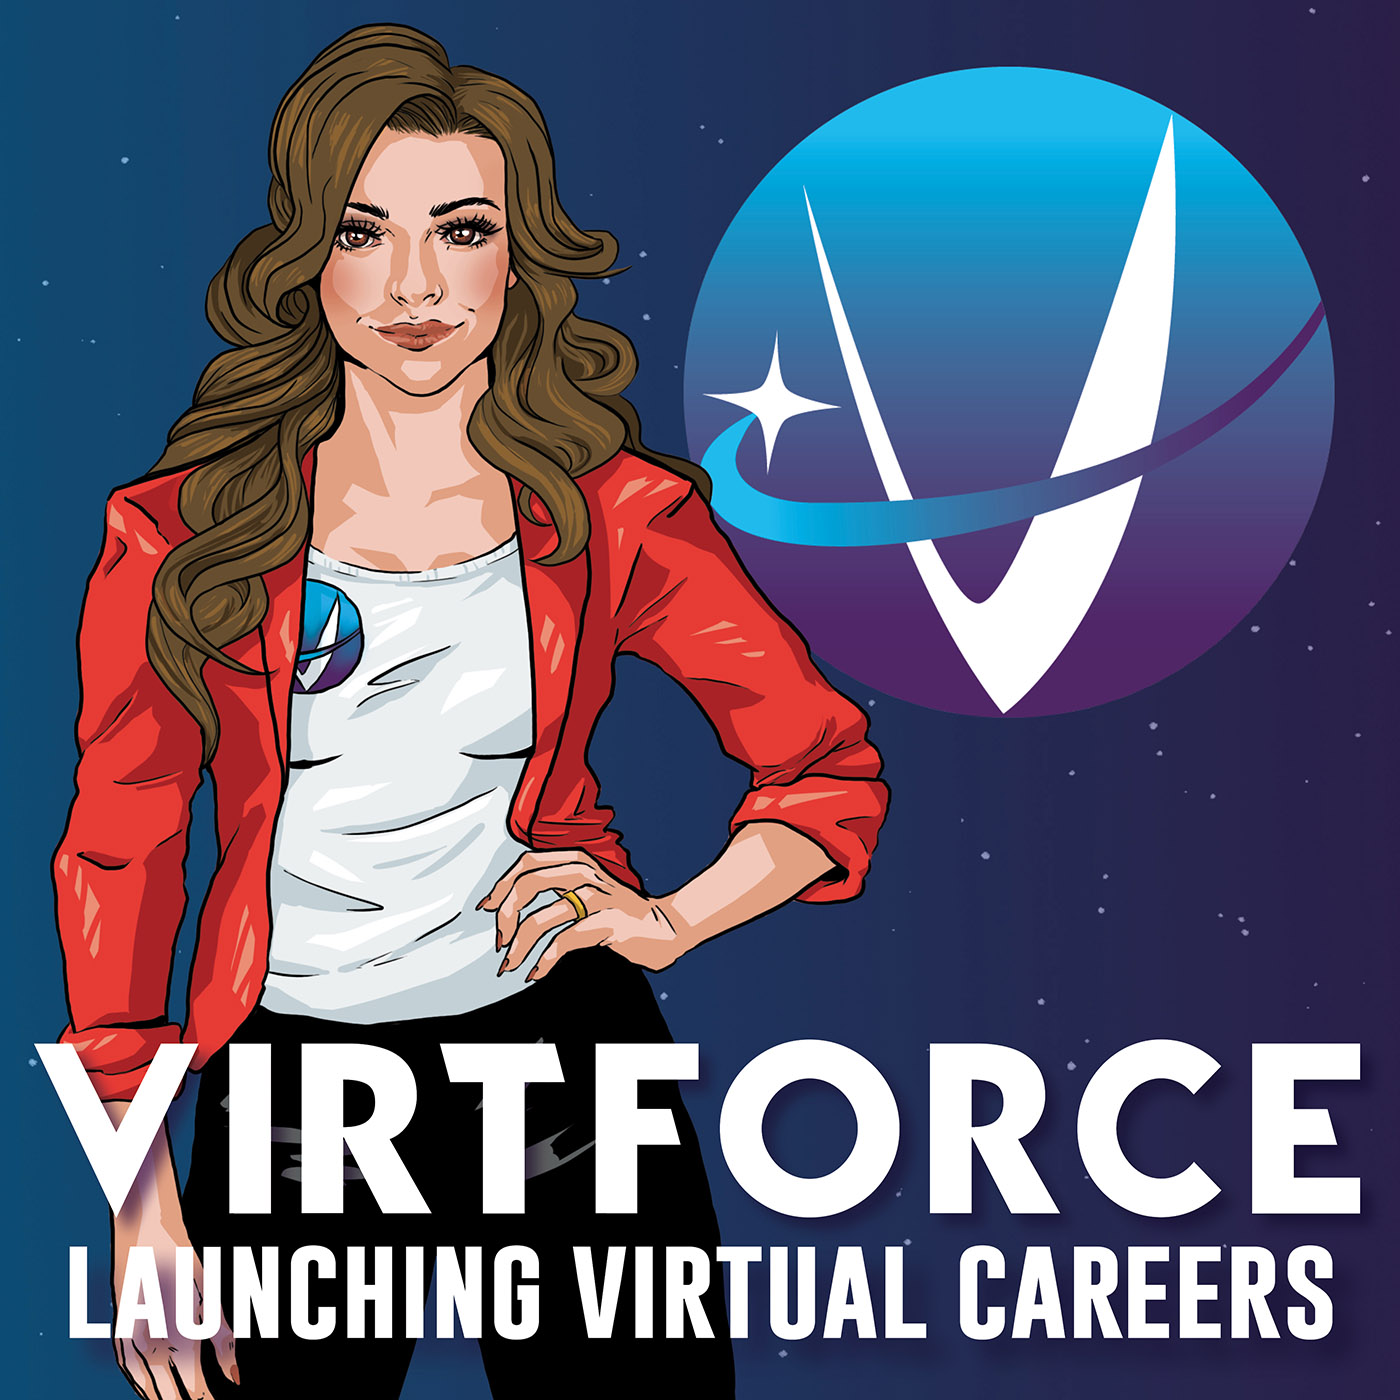 VirtForce Launching Virtual Careers